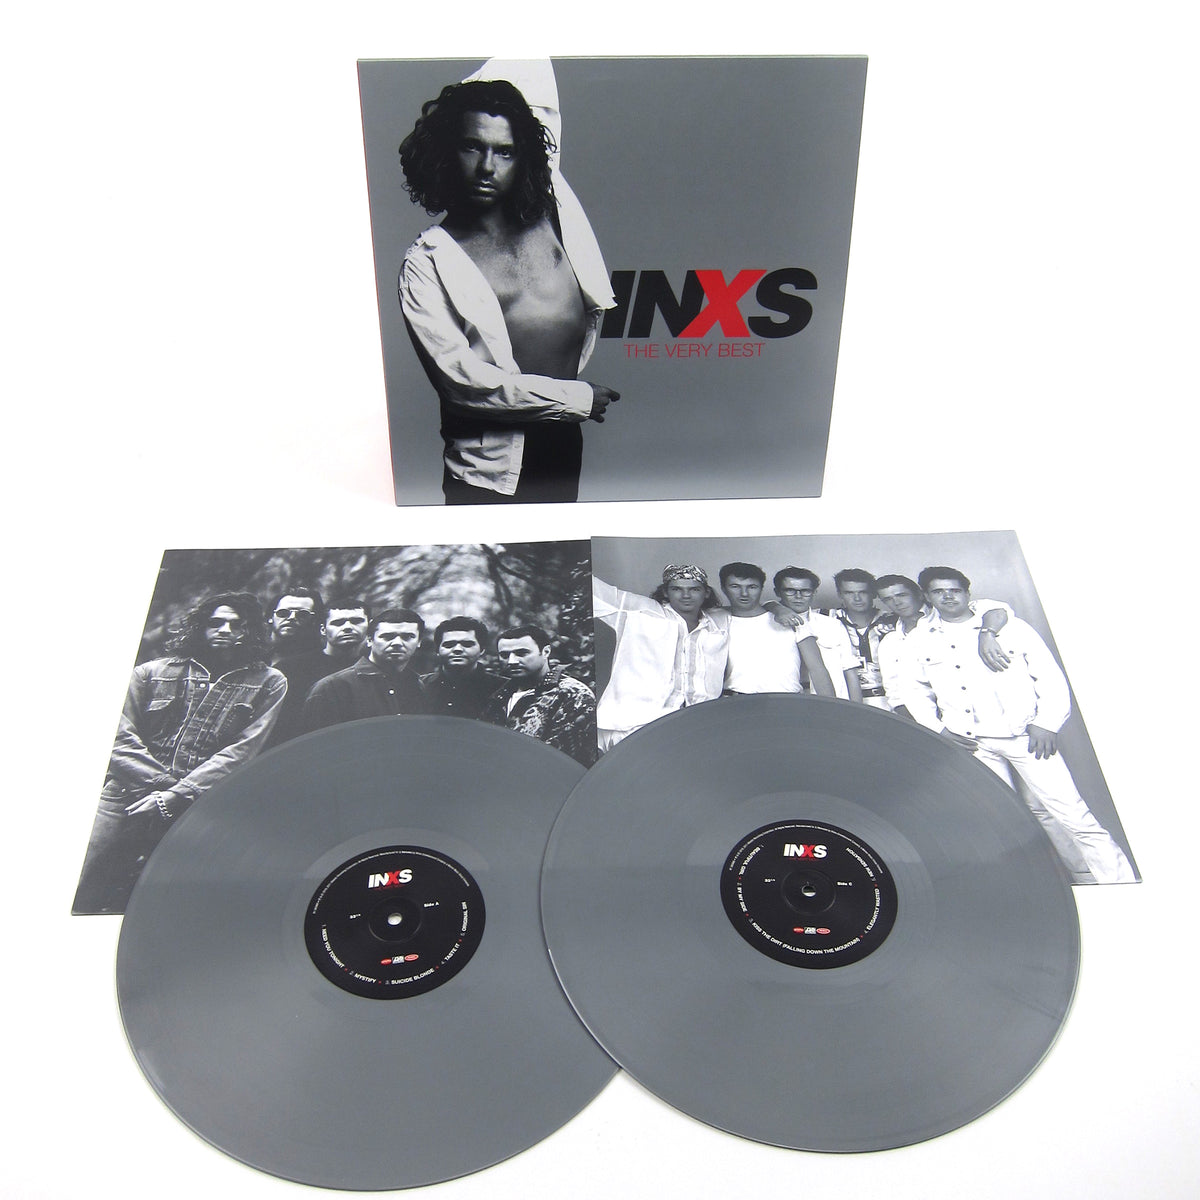 INXS: The Very Best Of (RSC Indie Exclusive Colored Vinyl) Vinyl 2LP